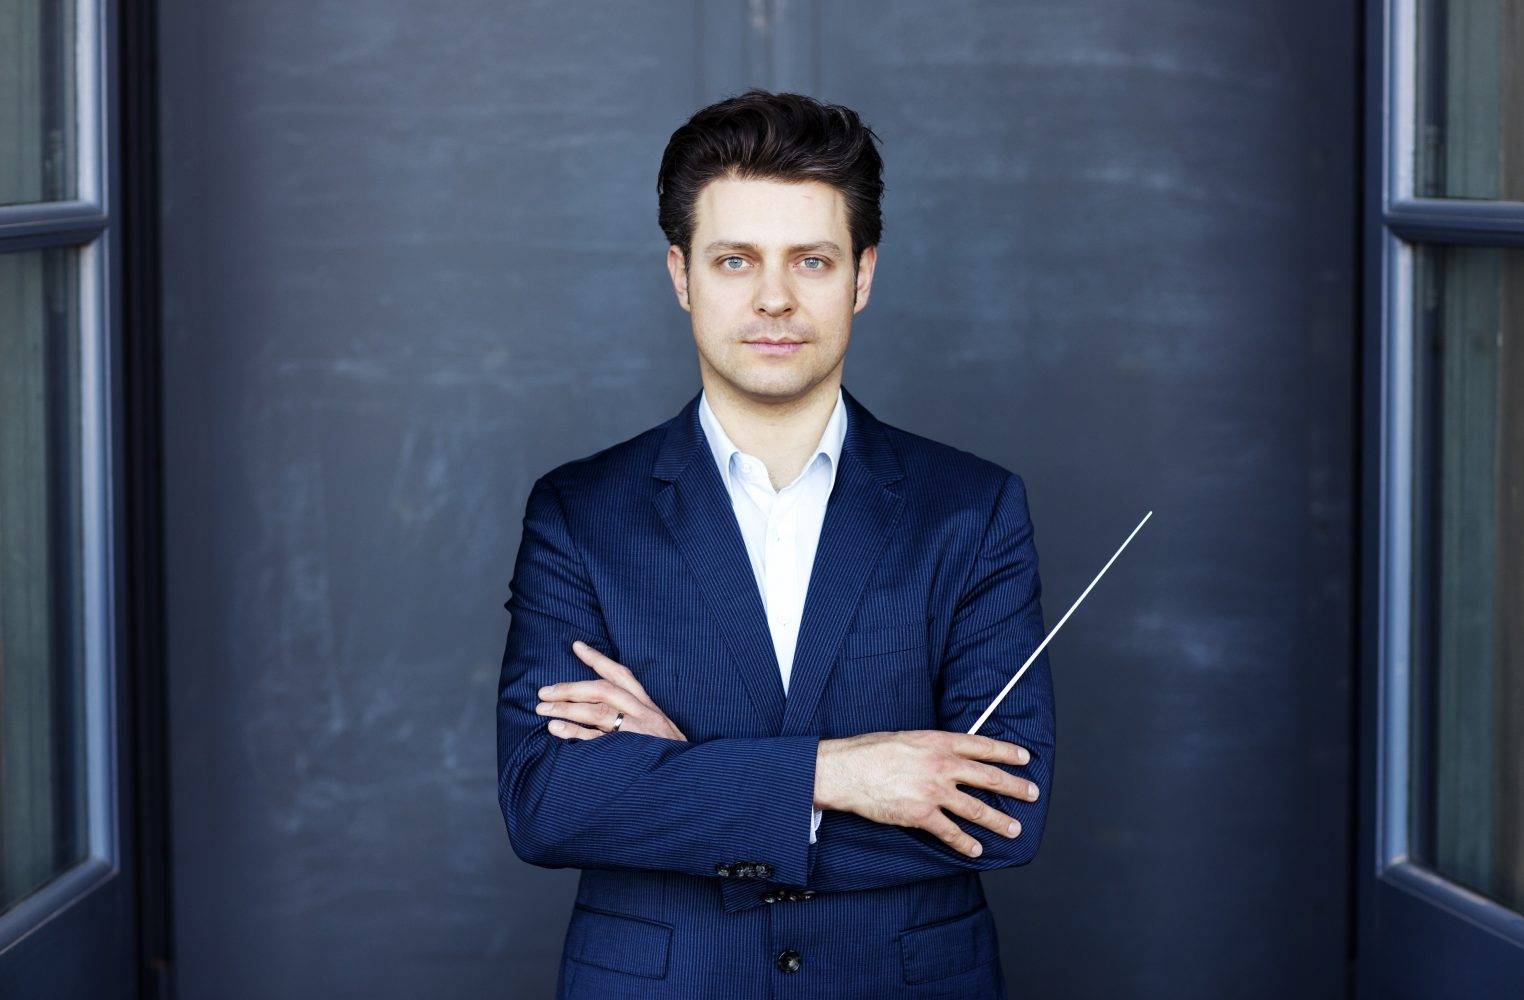 Joseph Bastian conducts the Gstaad Festival Orchestra on tour in Germany 1